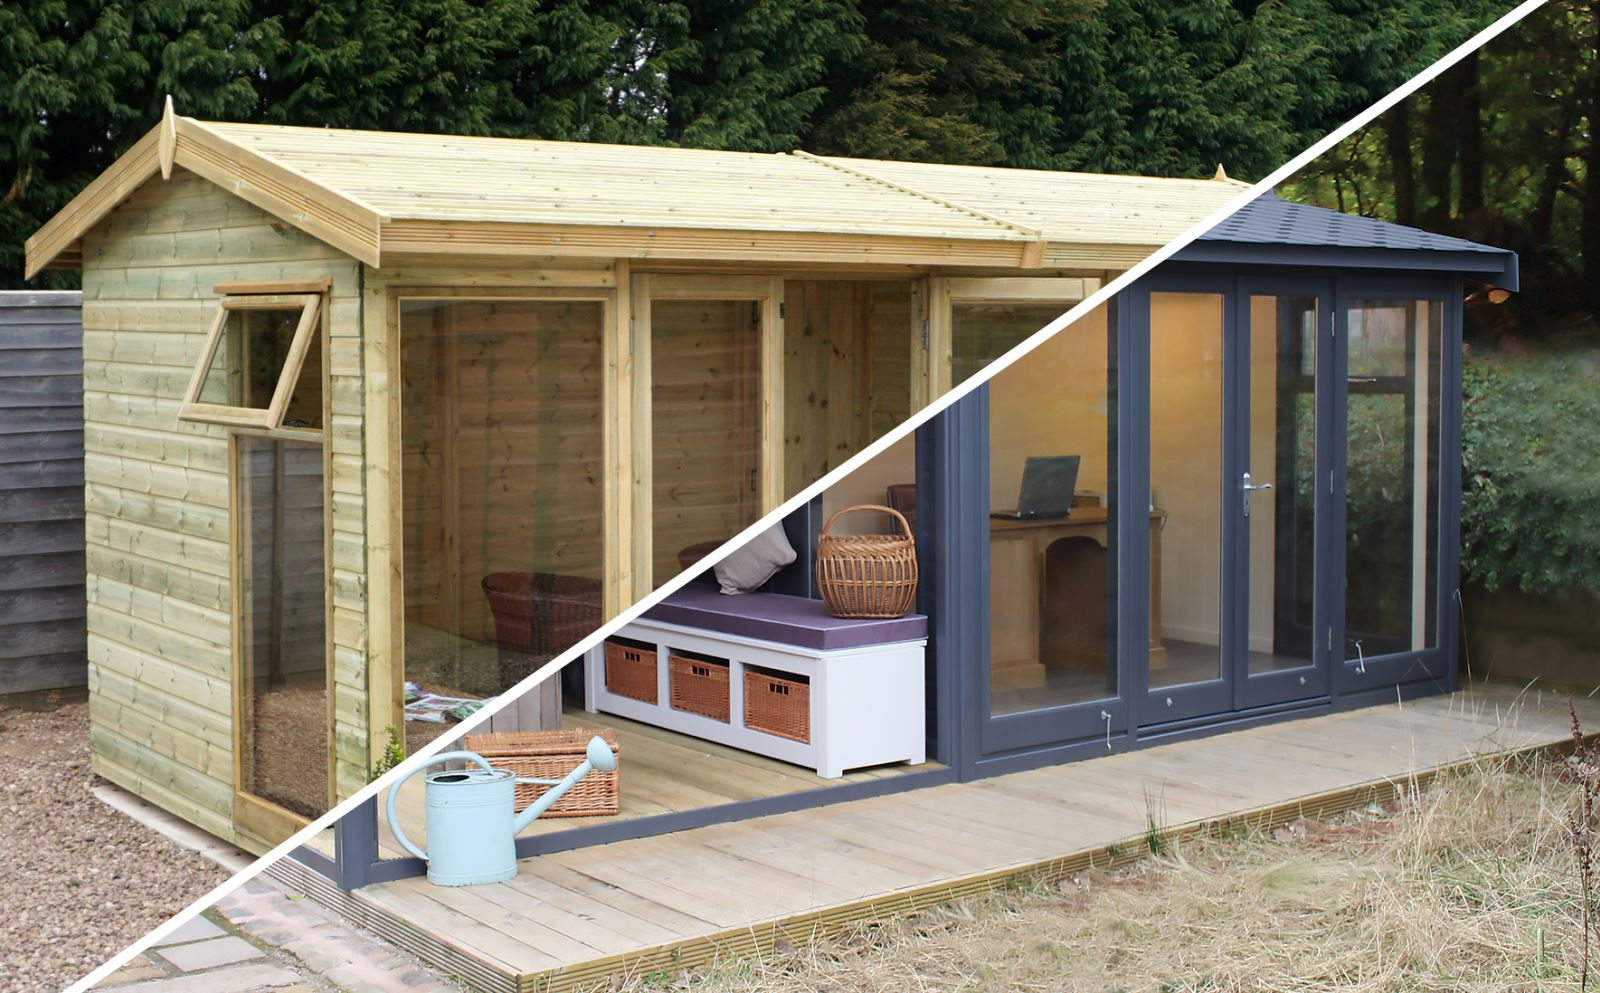 Summer House or Garden Office?